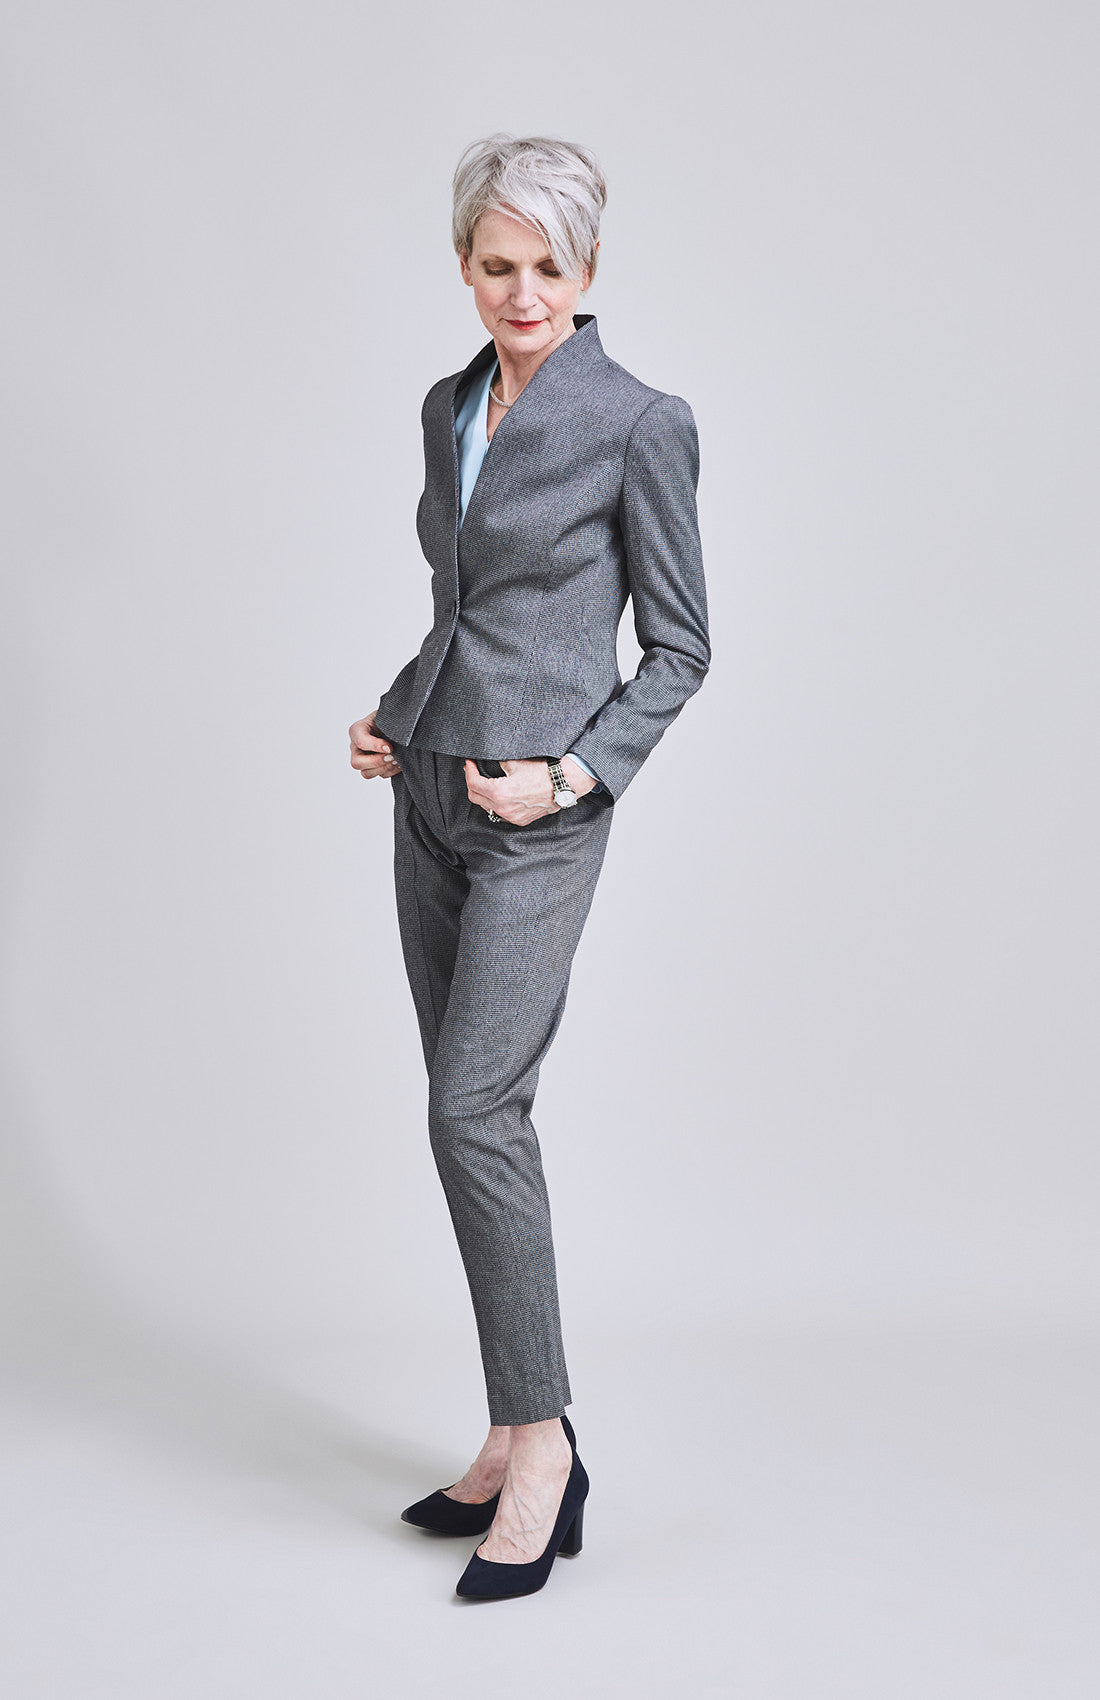 High waist herringbone tailored cigarette suit trouser for the office